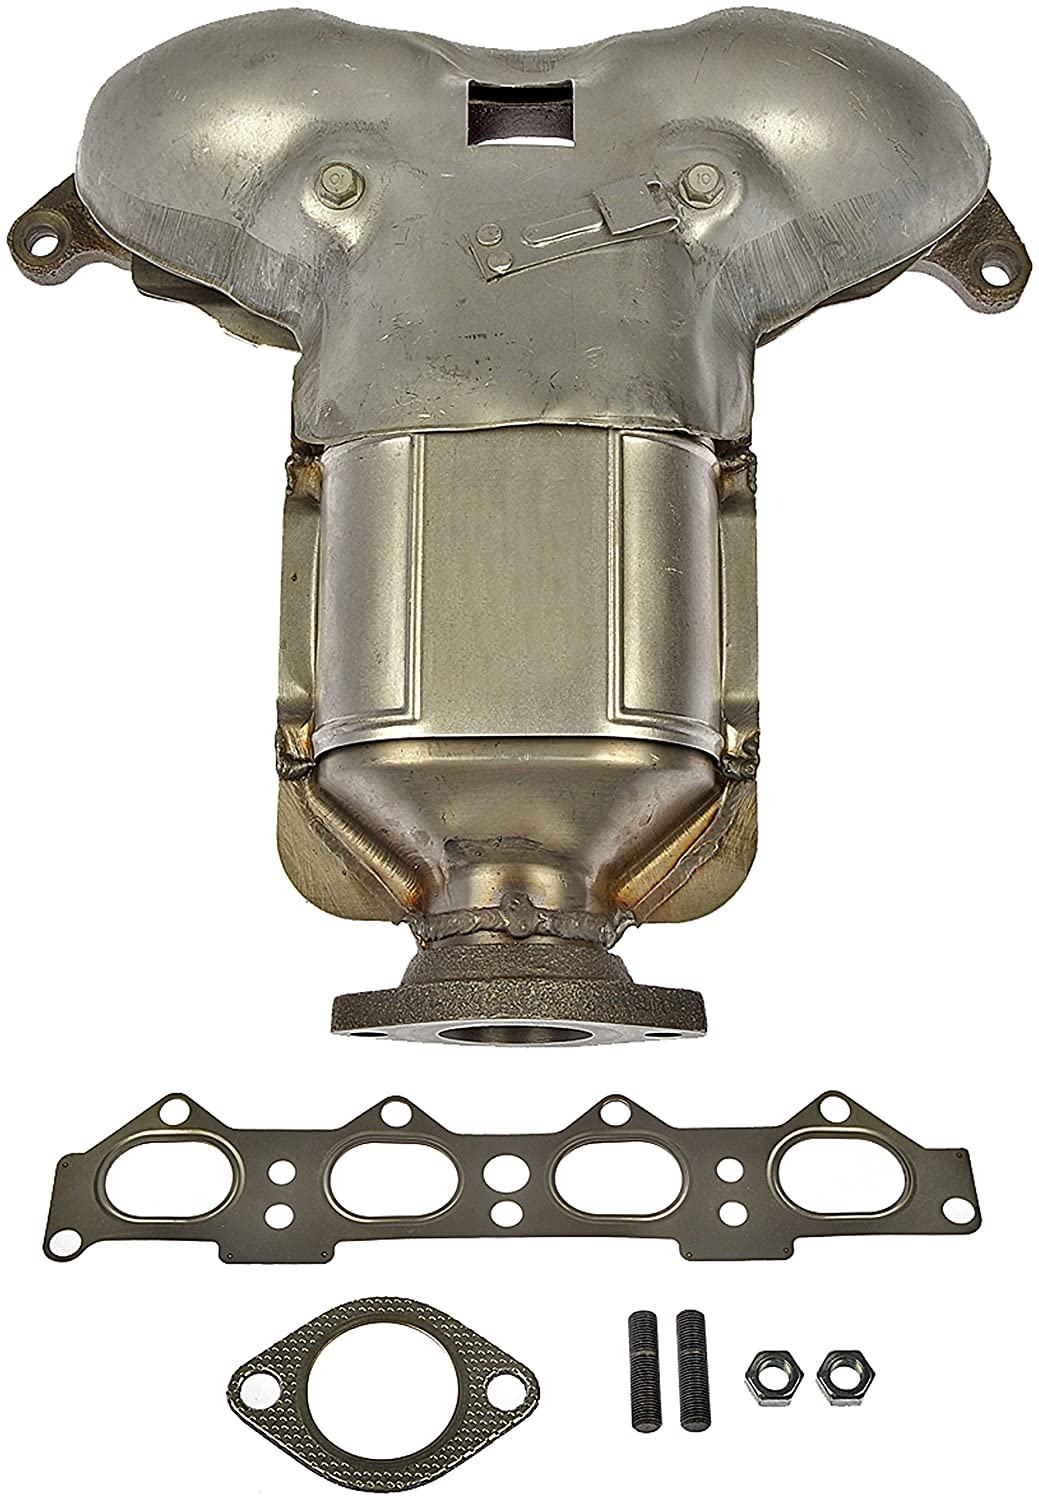 Dorman 674-796 Exhaust Manifold with Integrated Catalytic Converter Non-CARB Compliant